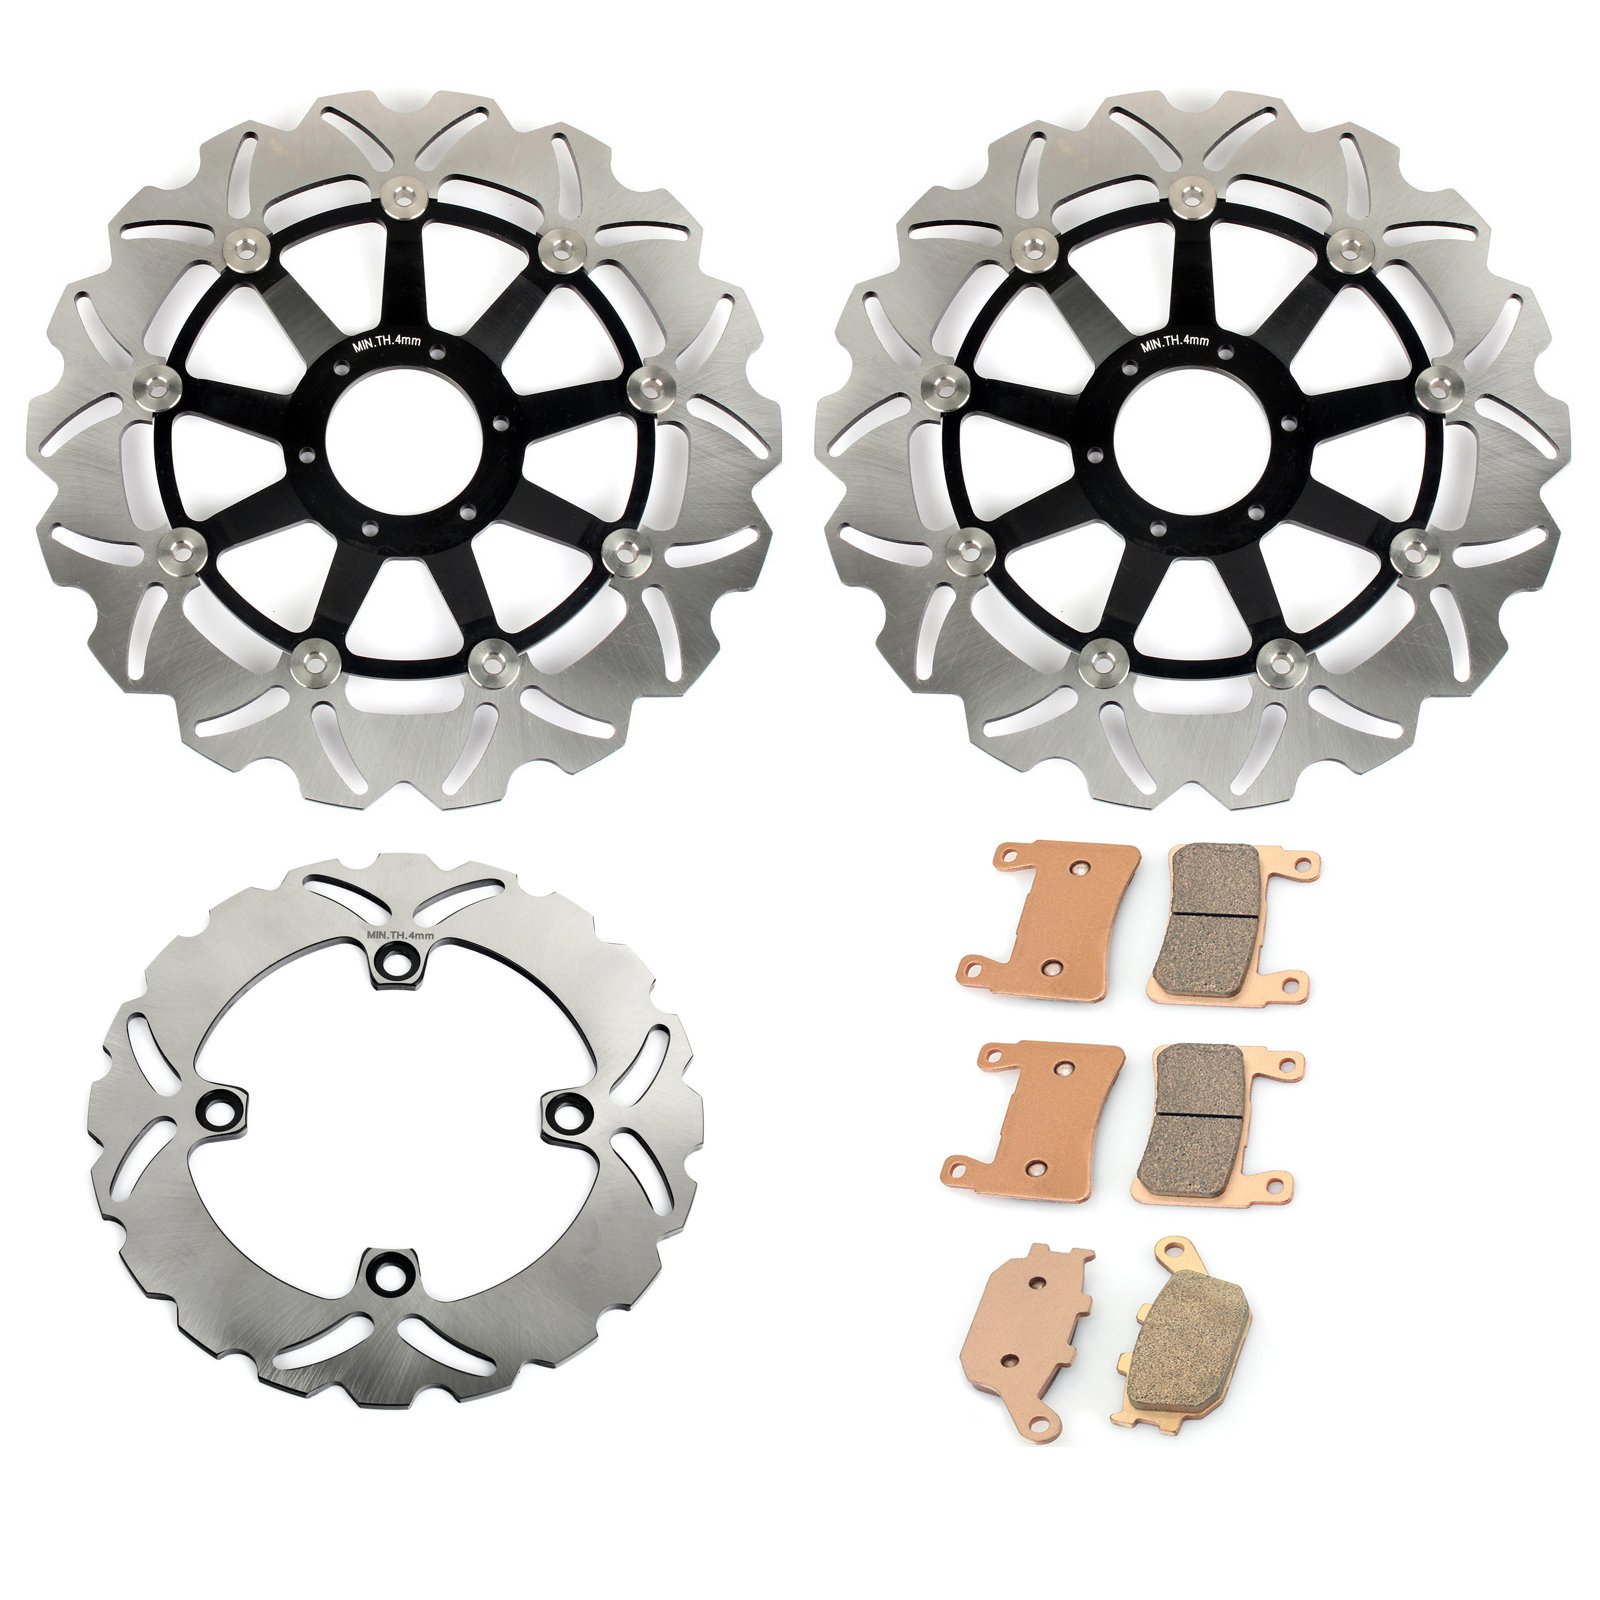 TARAZON Front Rear Brake Rotors + Pads for Honda CBR600F4 Supersport F4 1999 2000